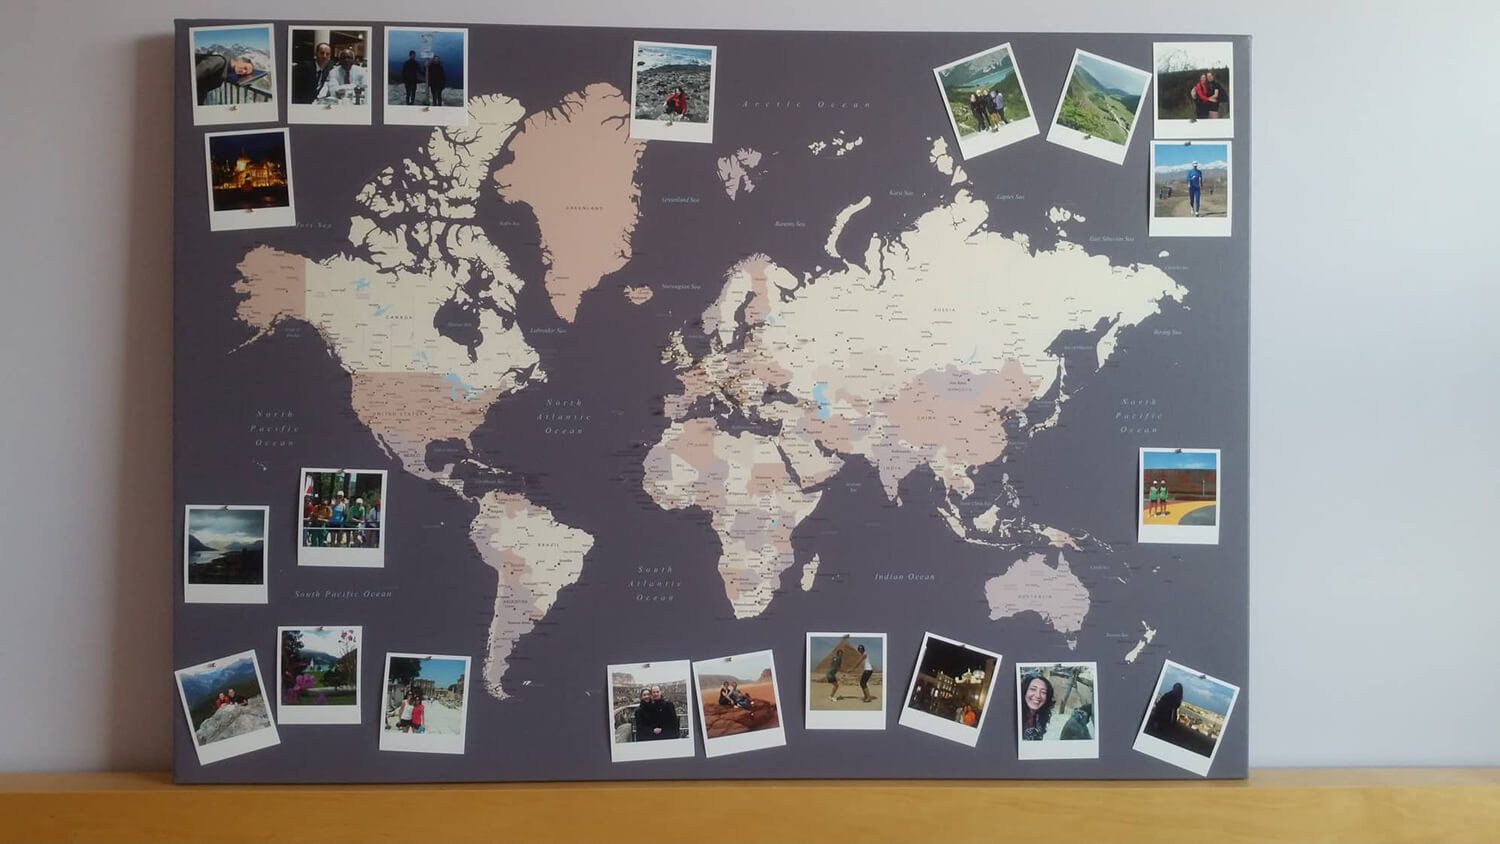 pinboard world map pinned with photos